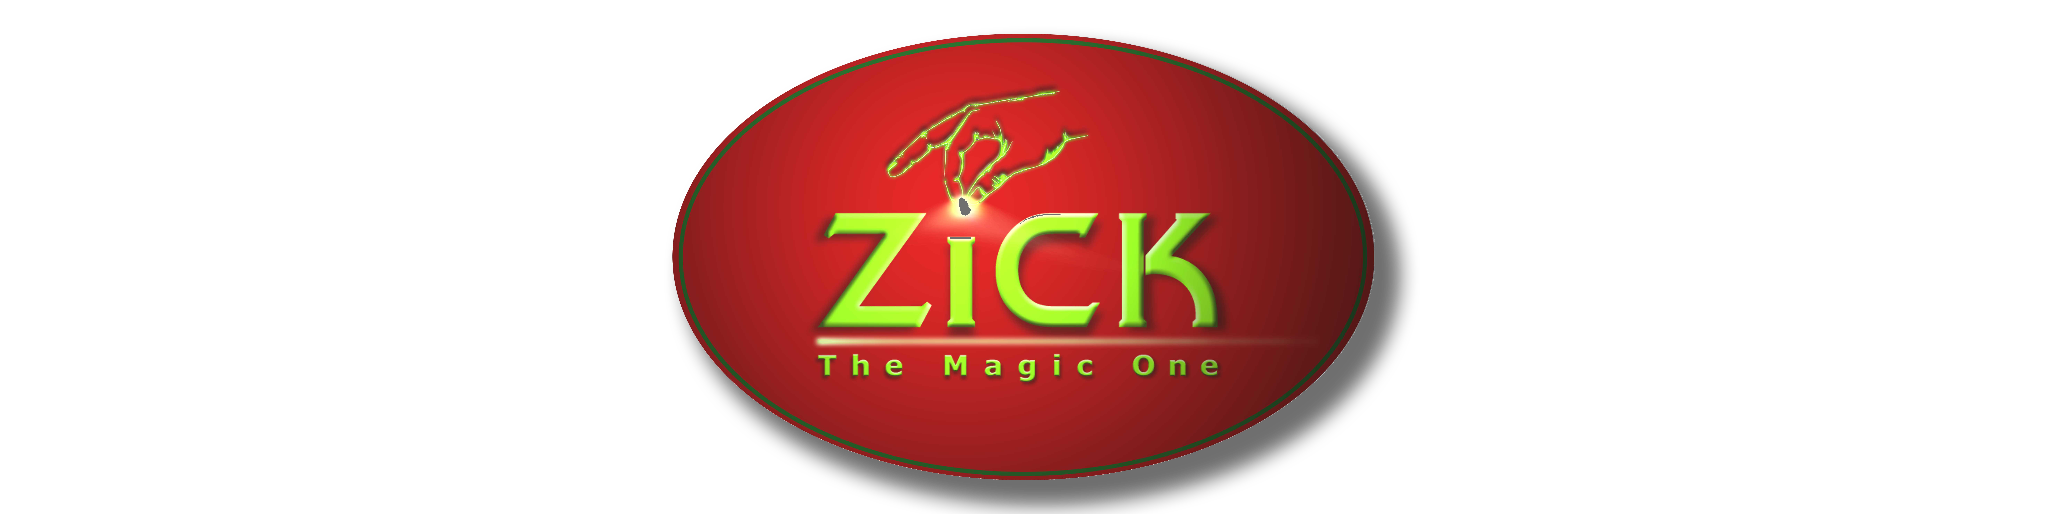 ZiCK - The Magic One